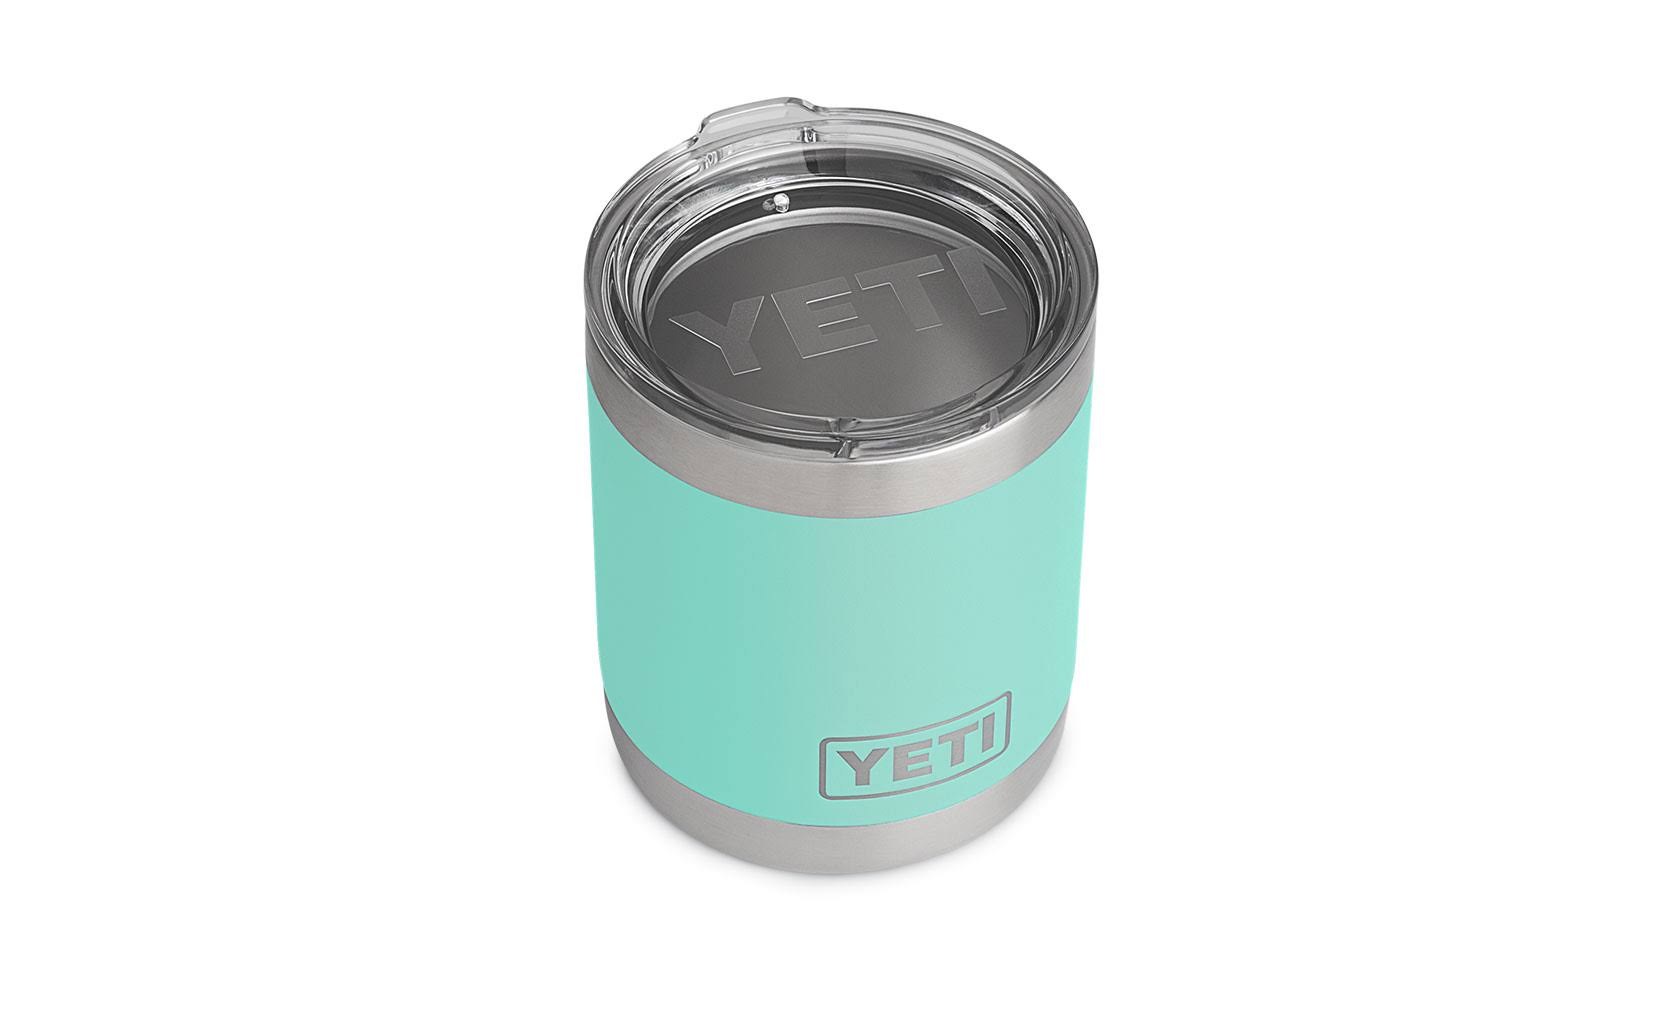 YETI Rambler Lowball Stainless Steel Cup with Lid - 10oz